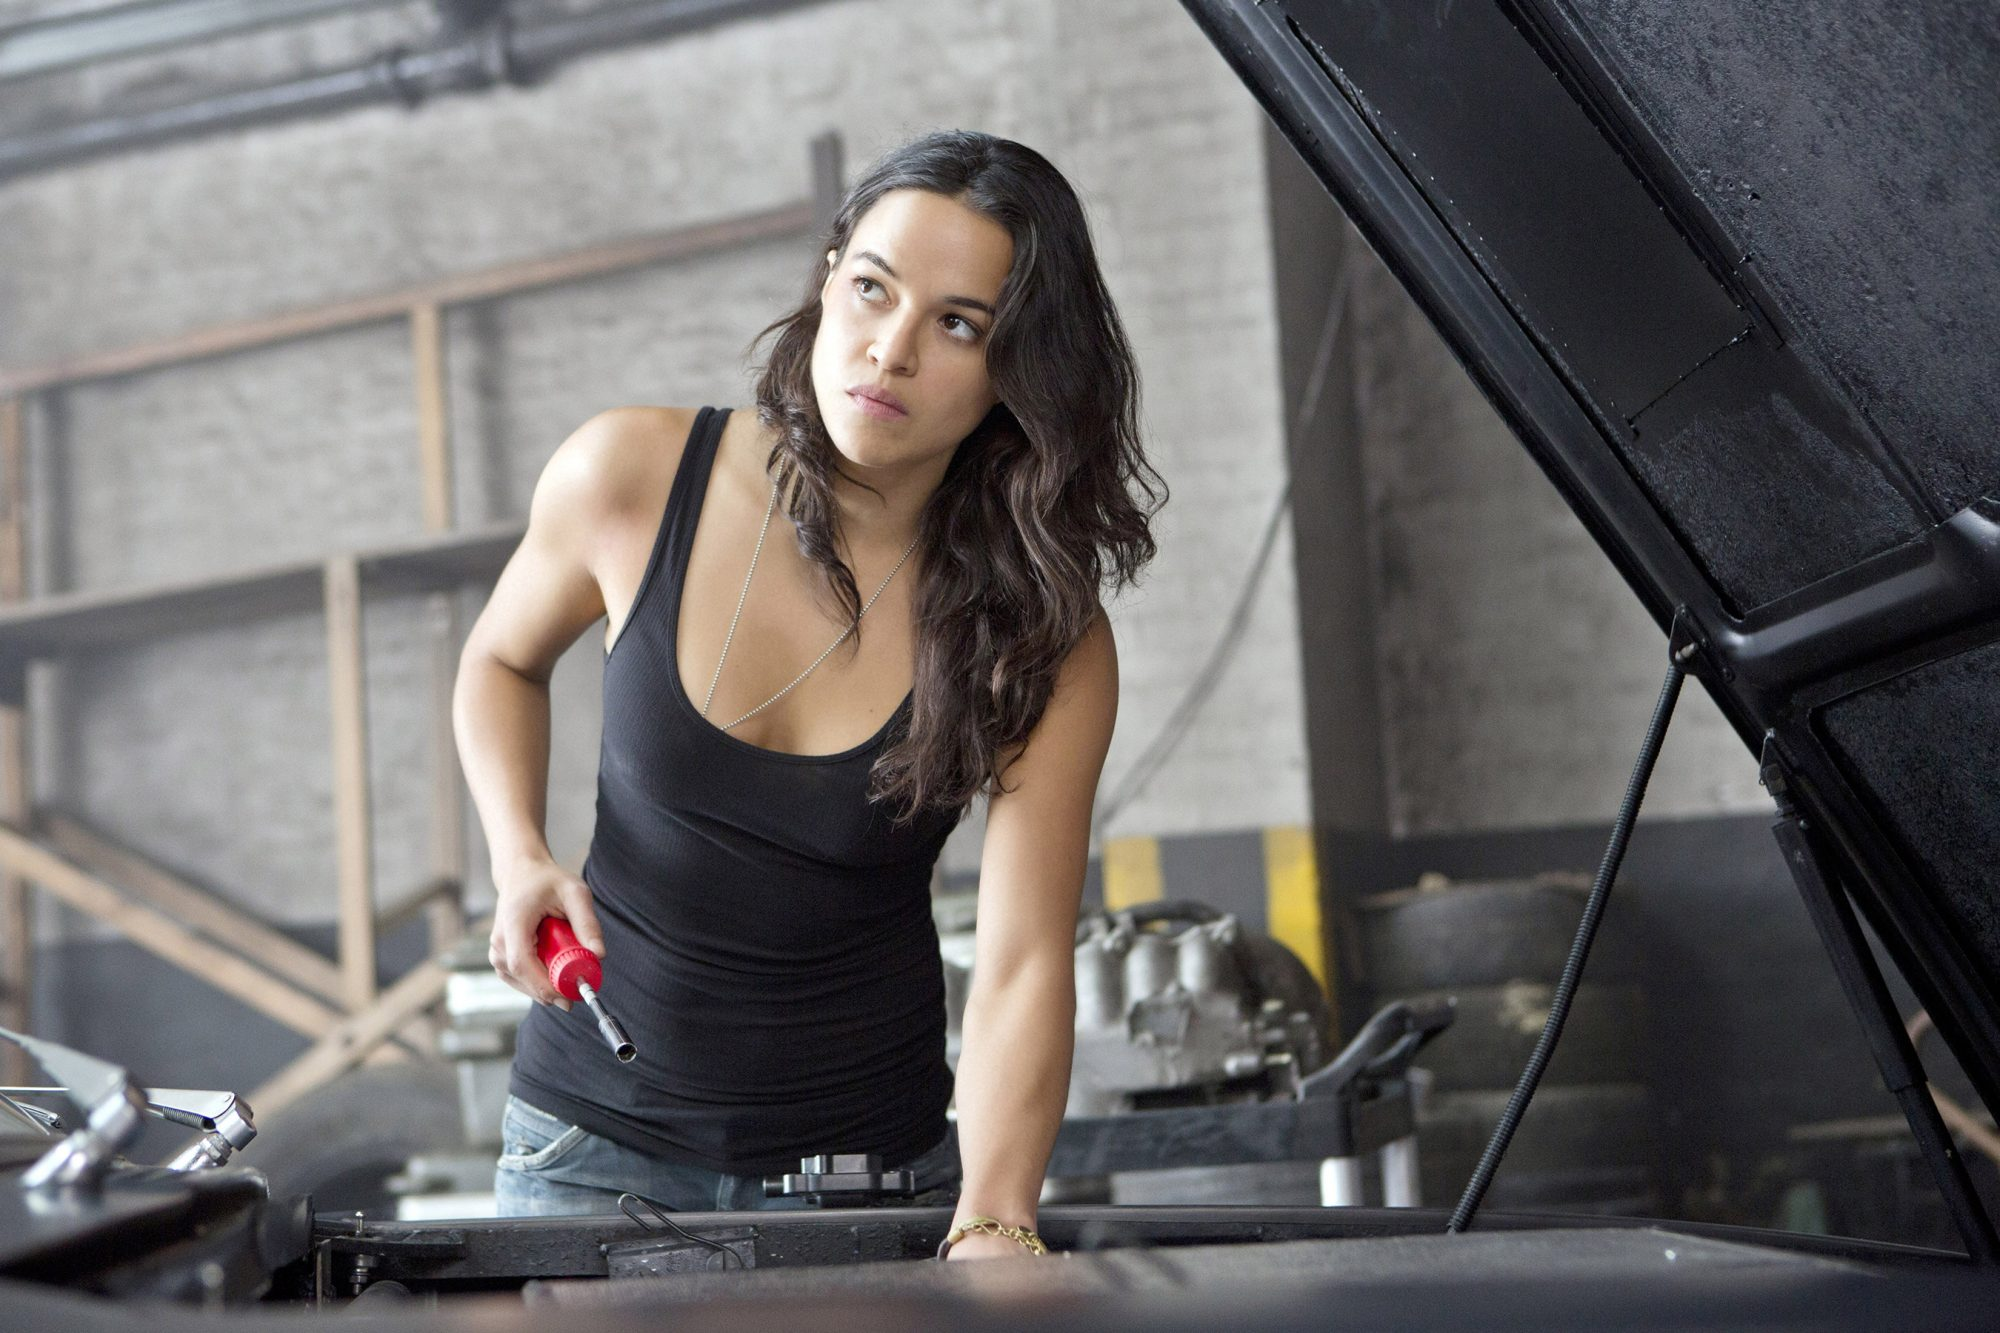 Greatest Female Action Stars of All-Time